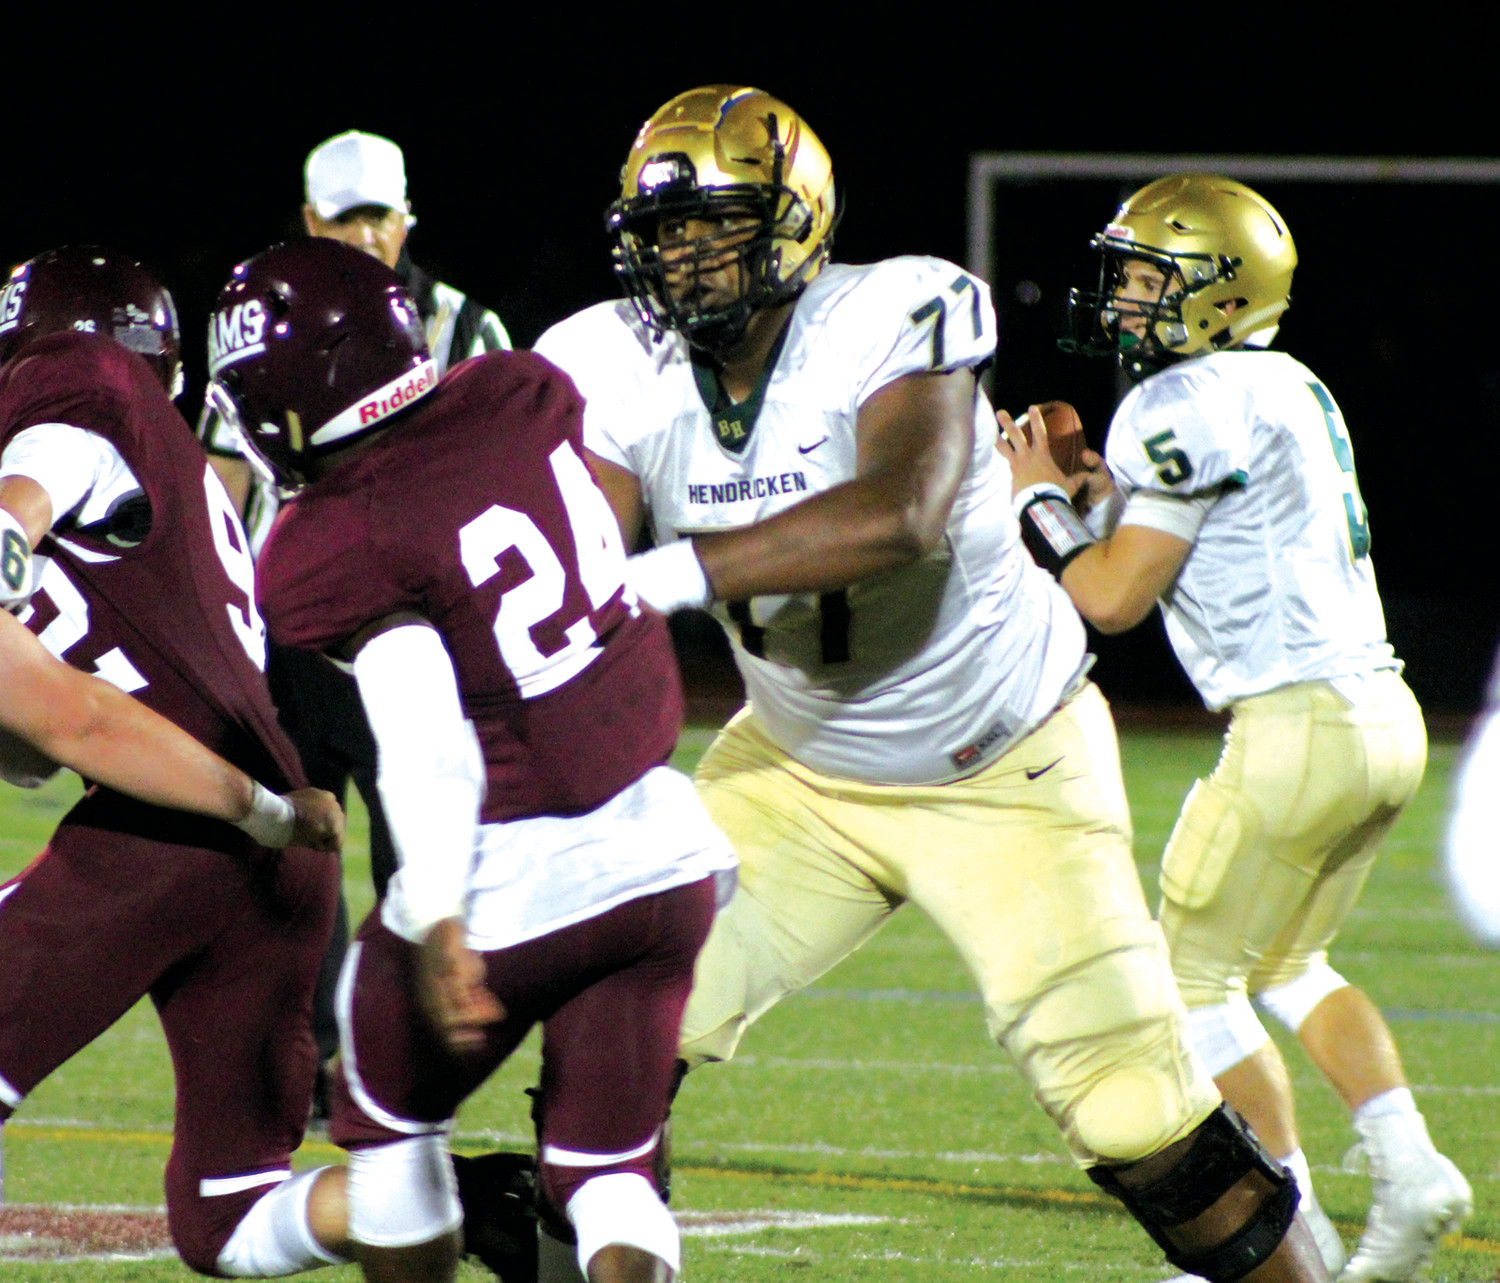 PROTECT THE QB: Hendricken's Xavier Truss.